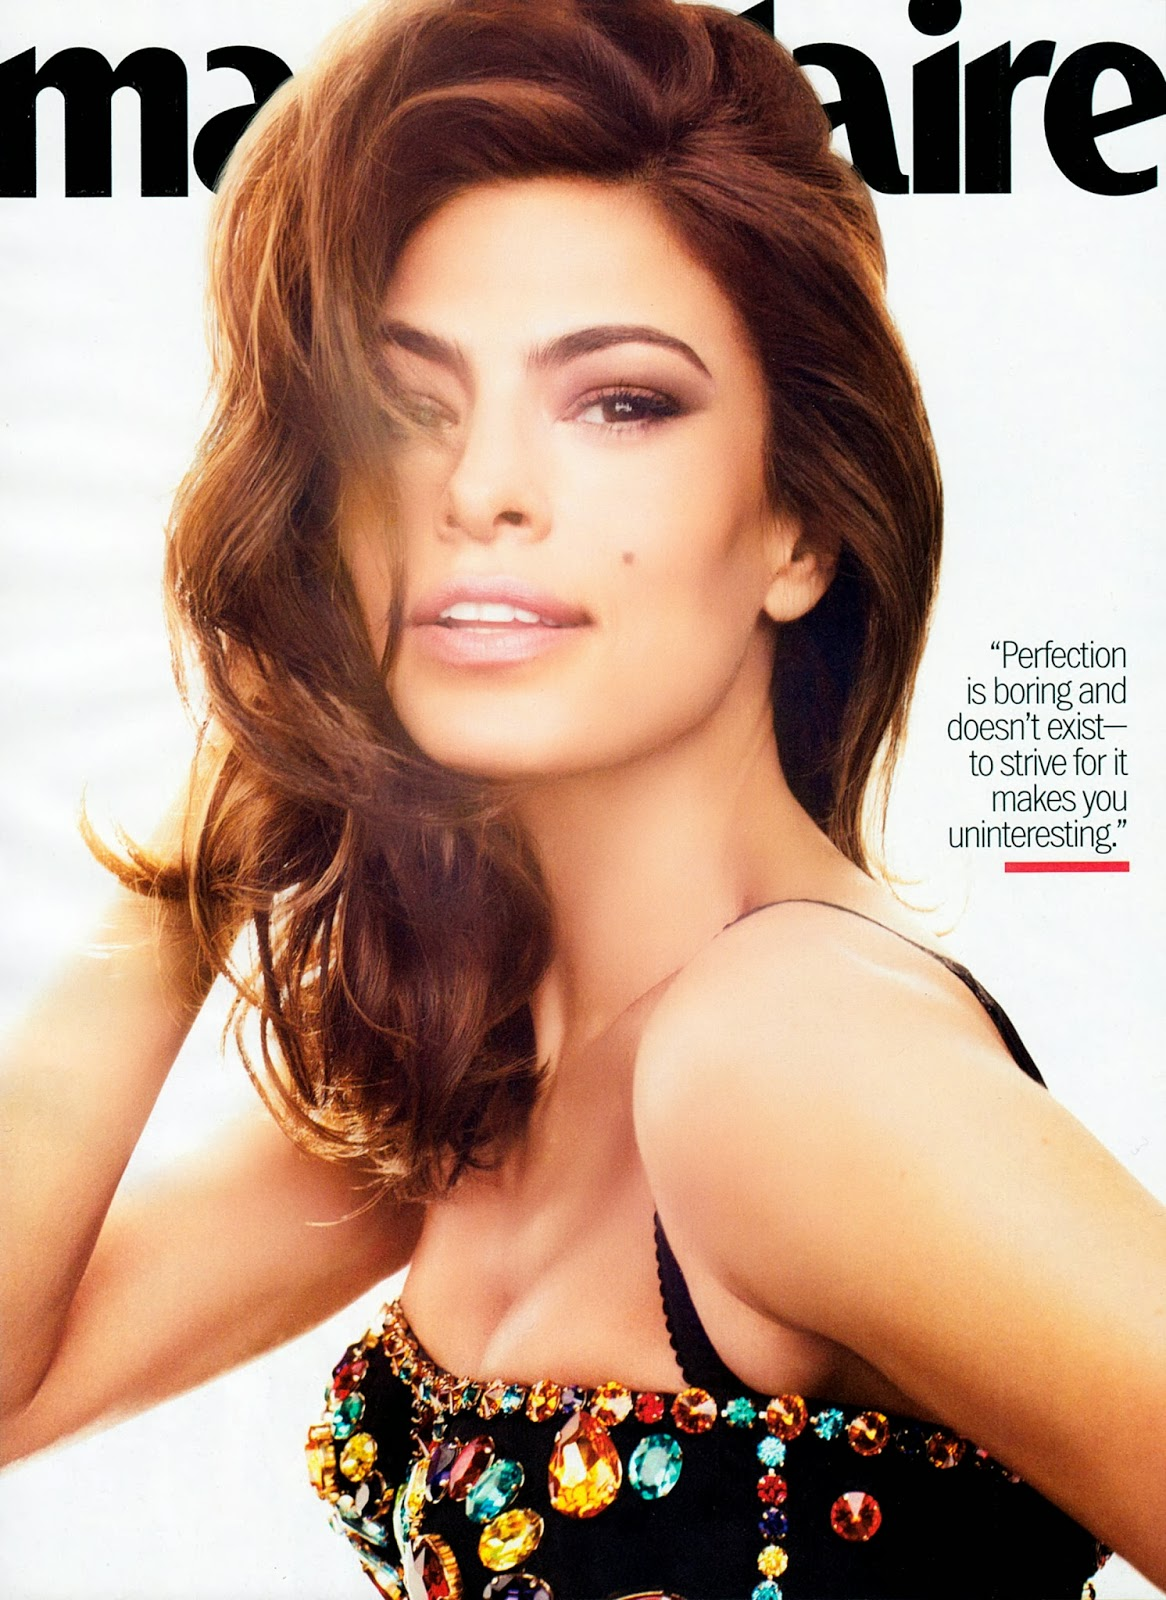 Eva Mendes HQ Pictures Marie Claire US Magazine Photoshoot March 2012 By Txema Yeste